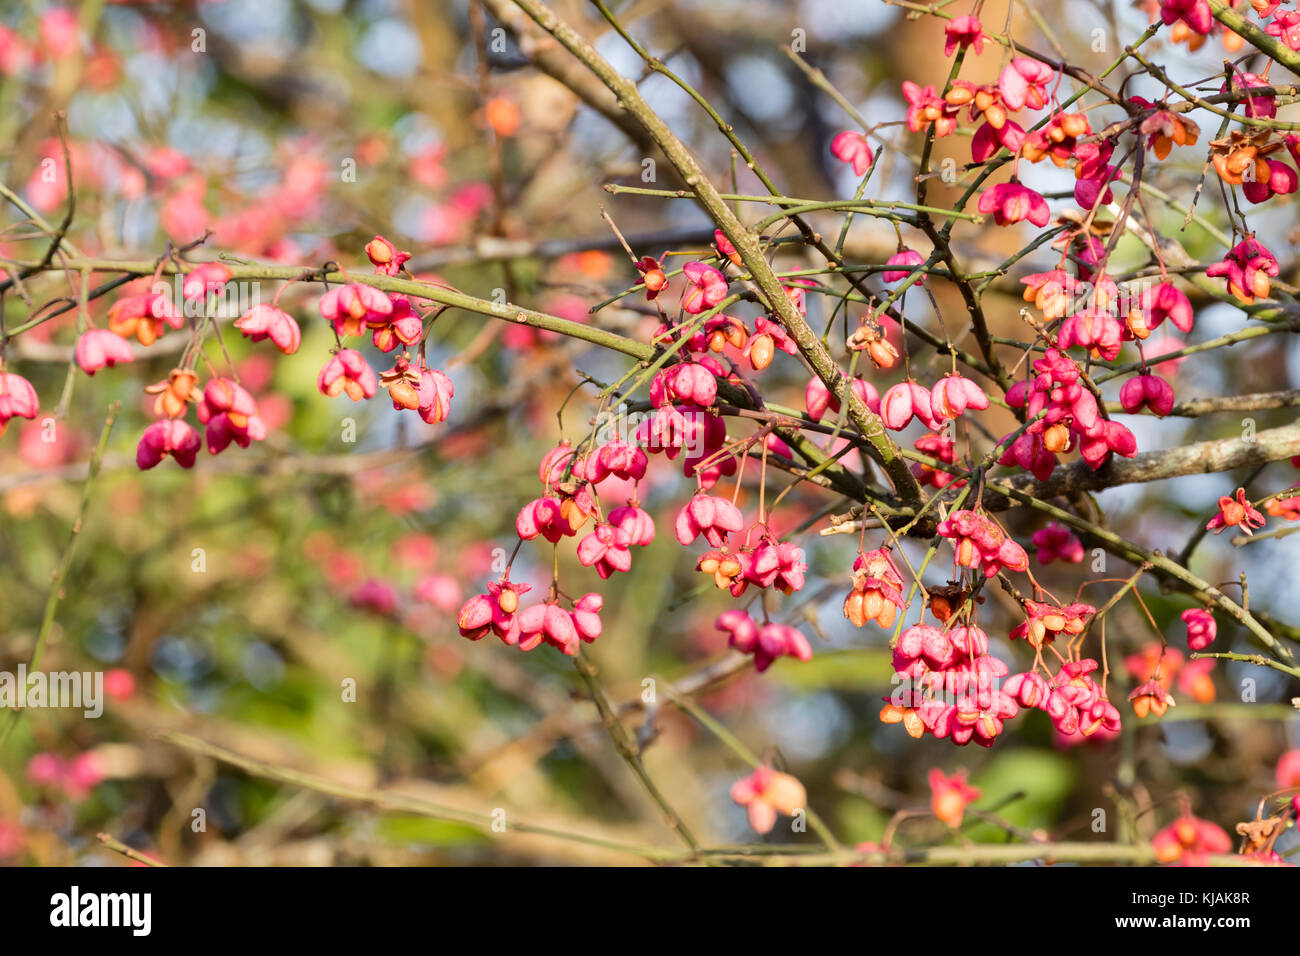 Orange seeds in the pink capsular fruits of the UK native hedgerow spindle tree, Euonymus europaeus - Stock Image